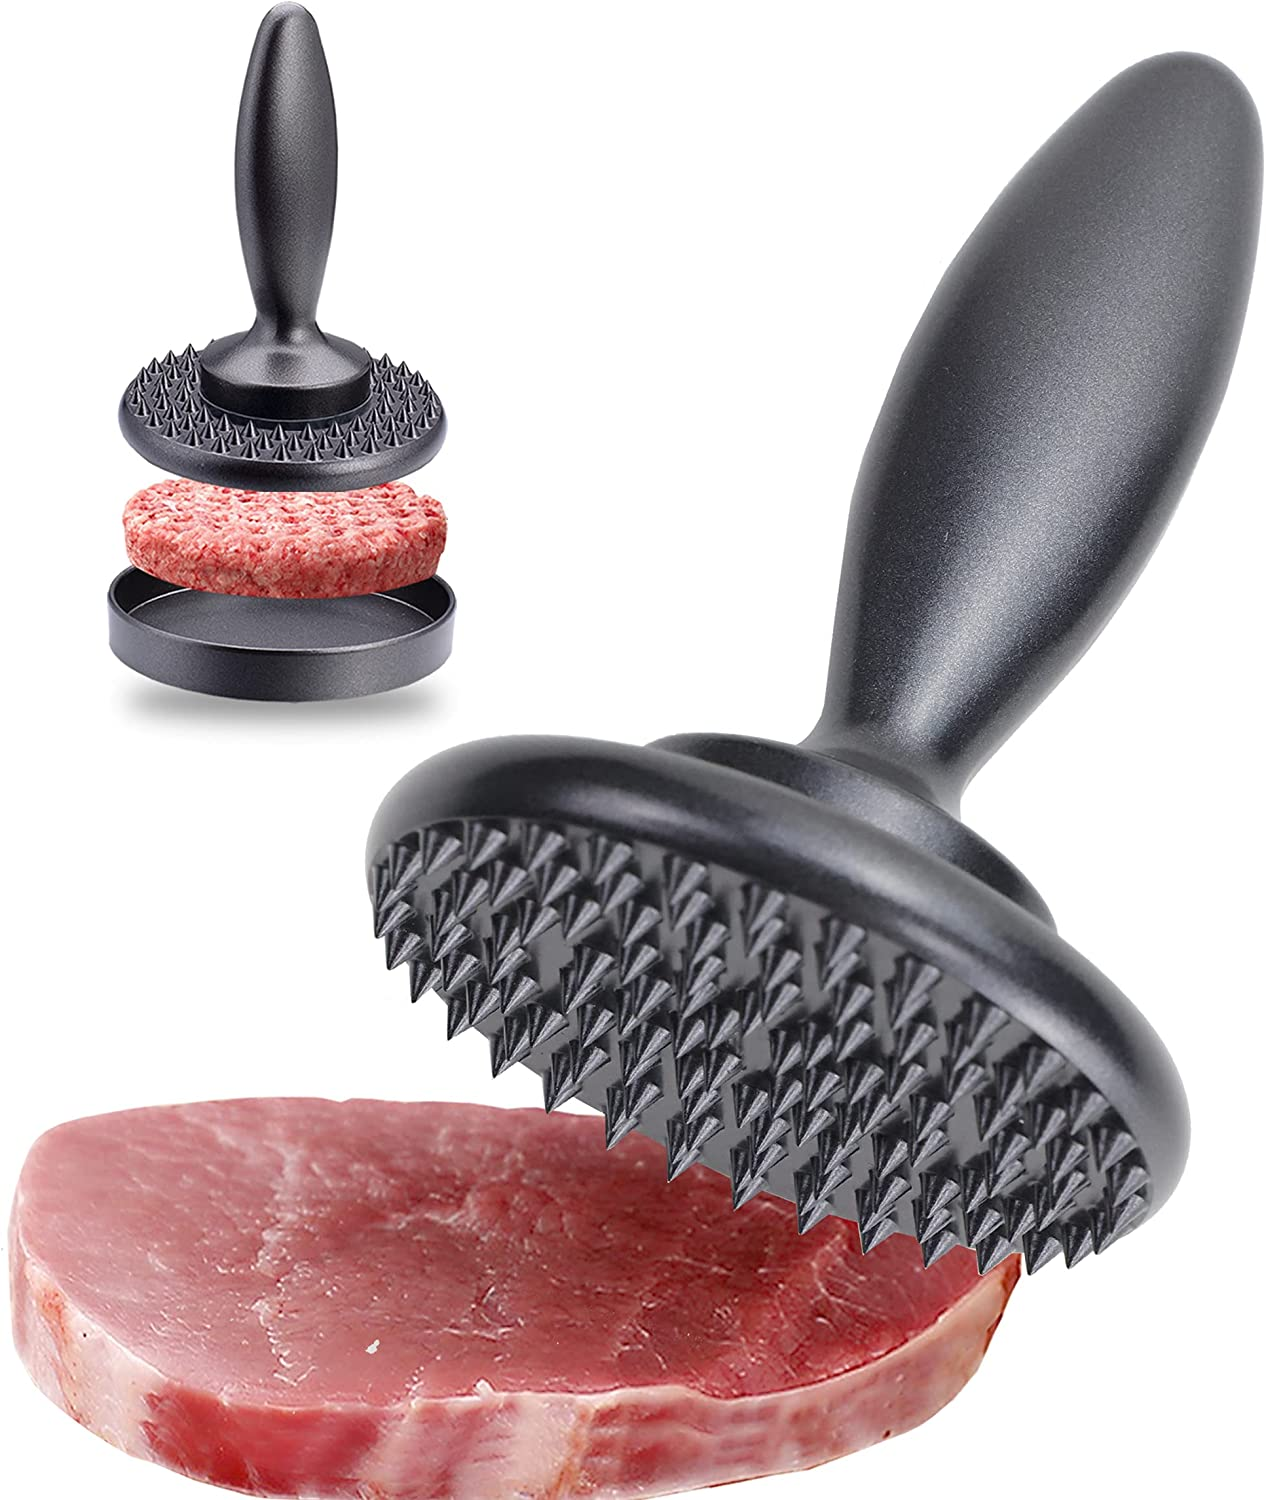 Meat Tenderizer 3-in-1 Reversible Ranking TOP2 and Tool New products, world's highest quality popular! Poun